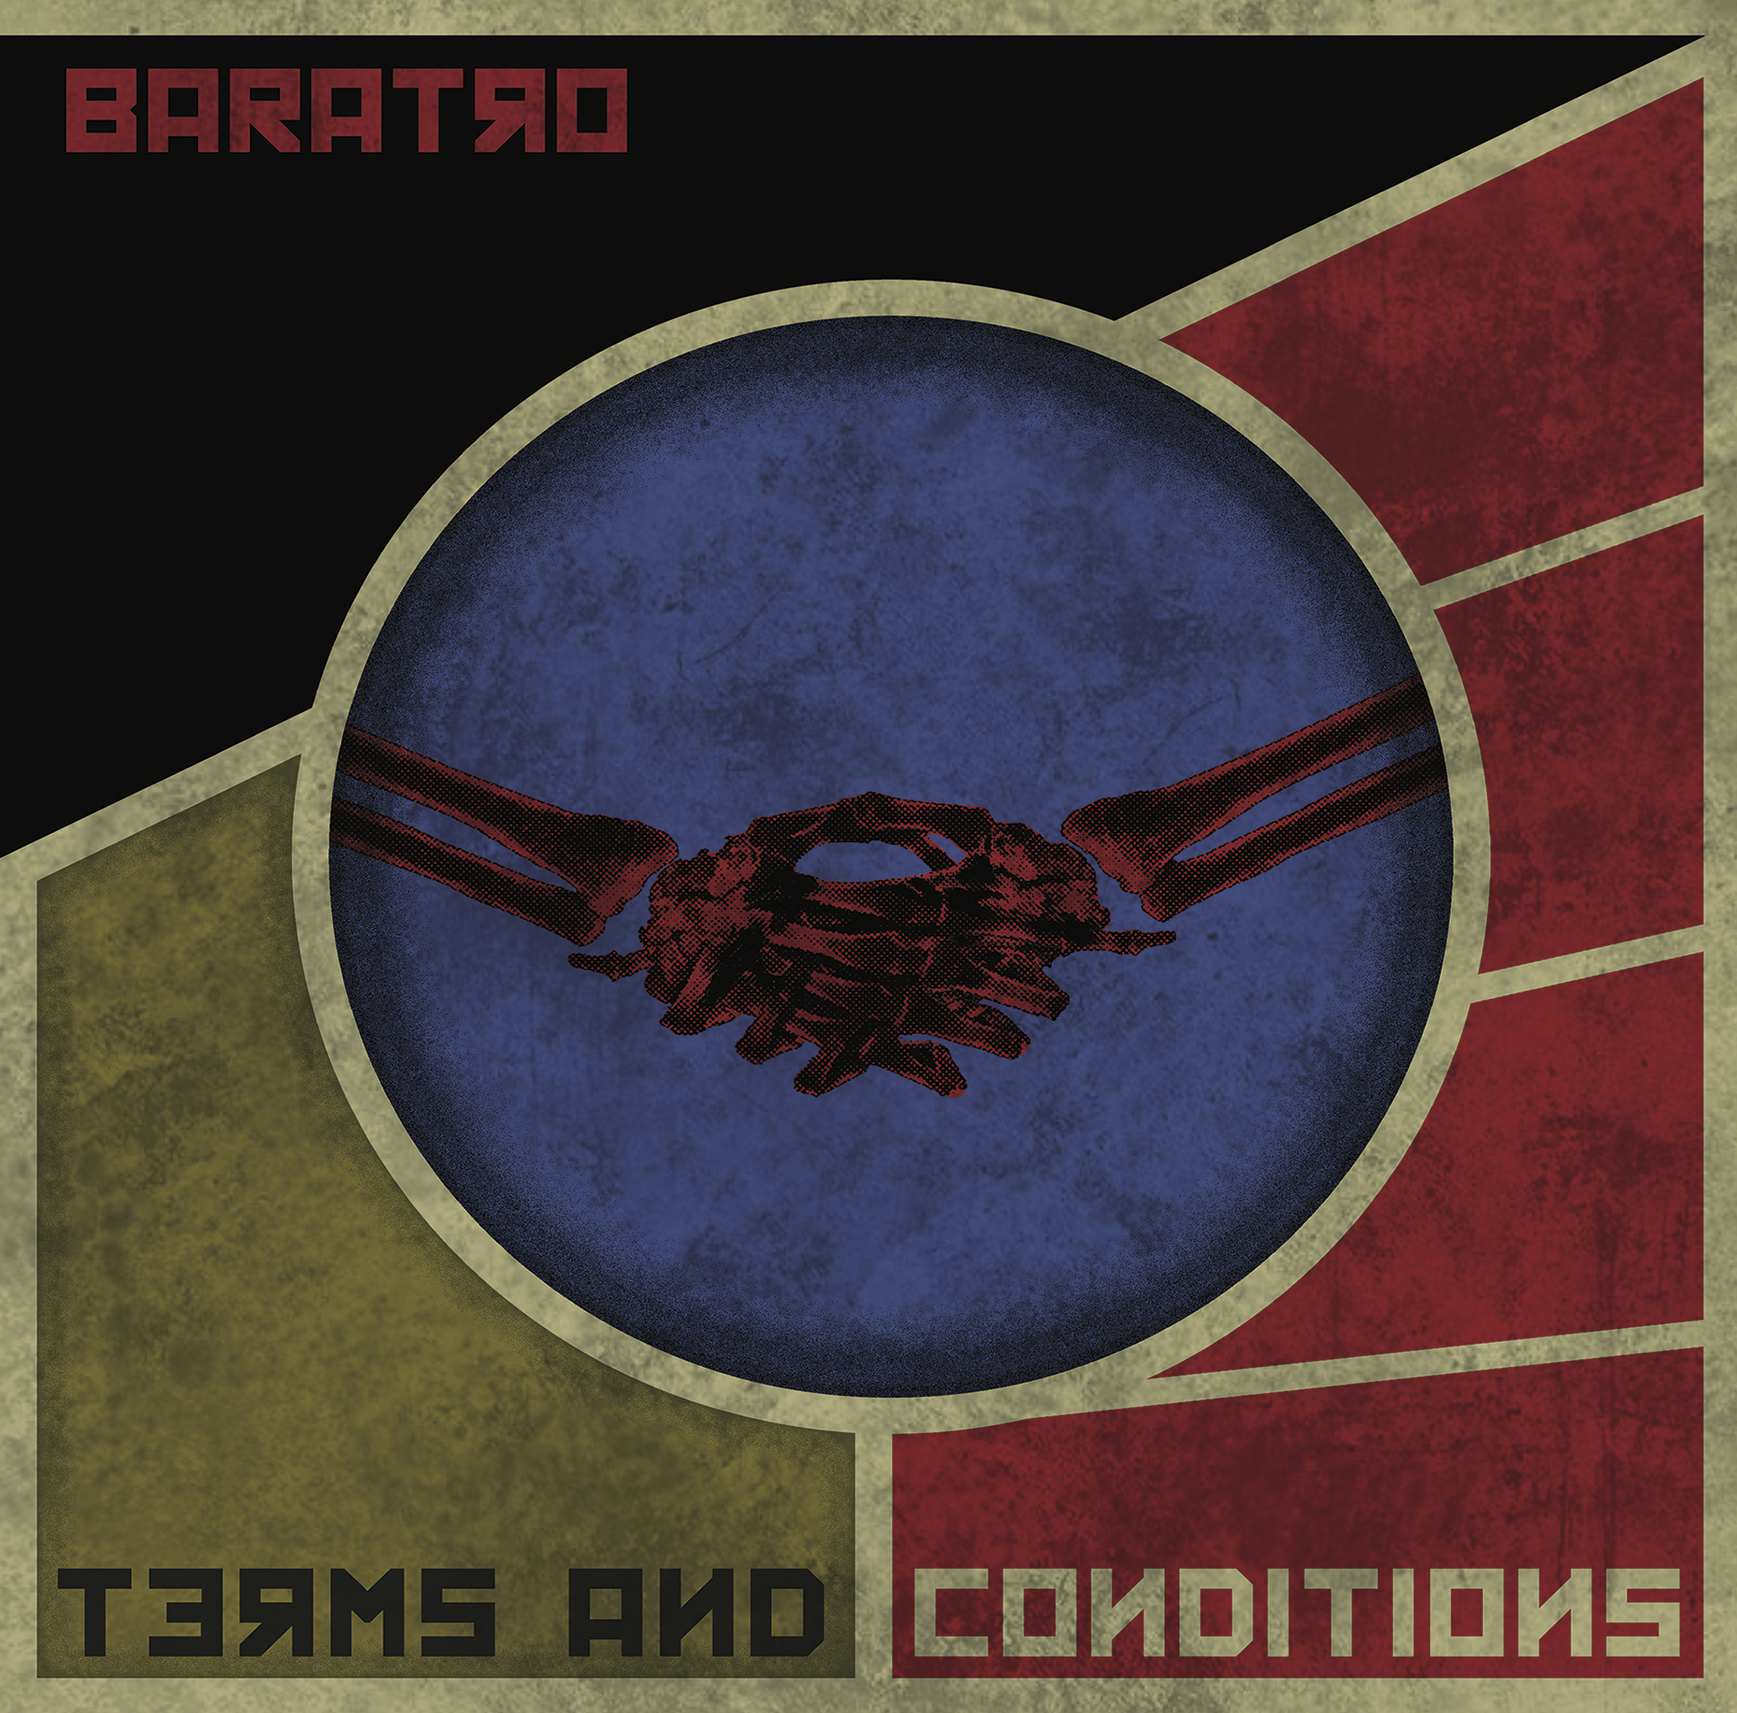 Baratro - Terms and conditions EP +  T - shirt Bundle